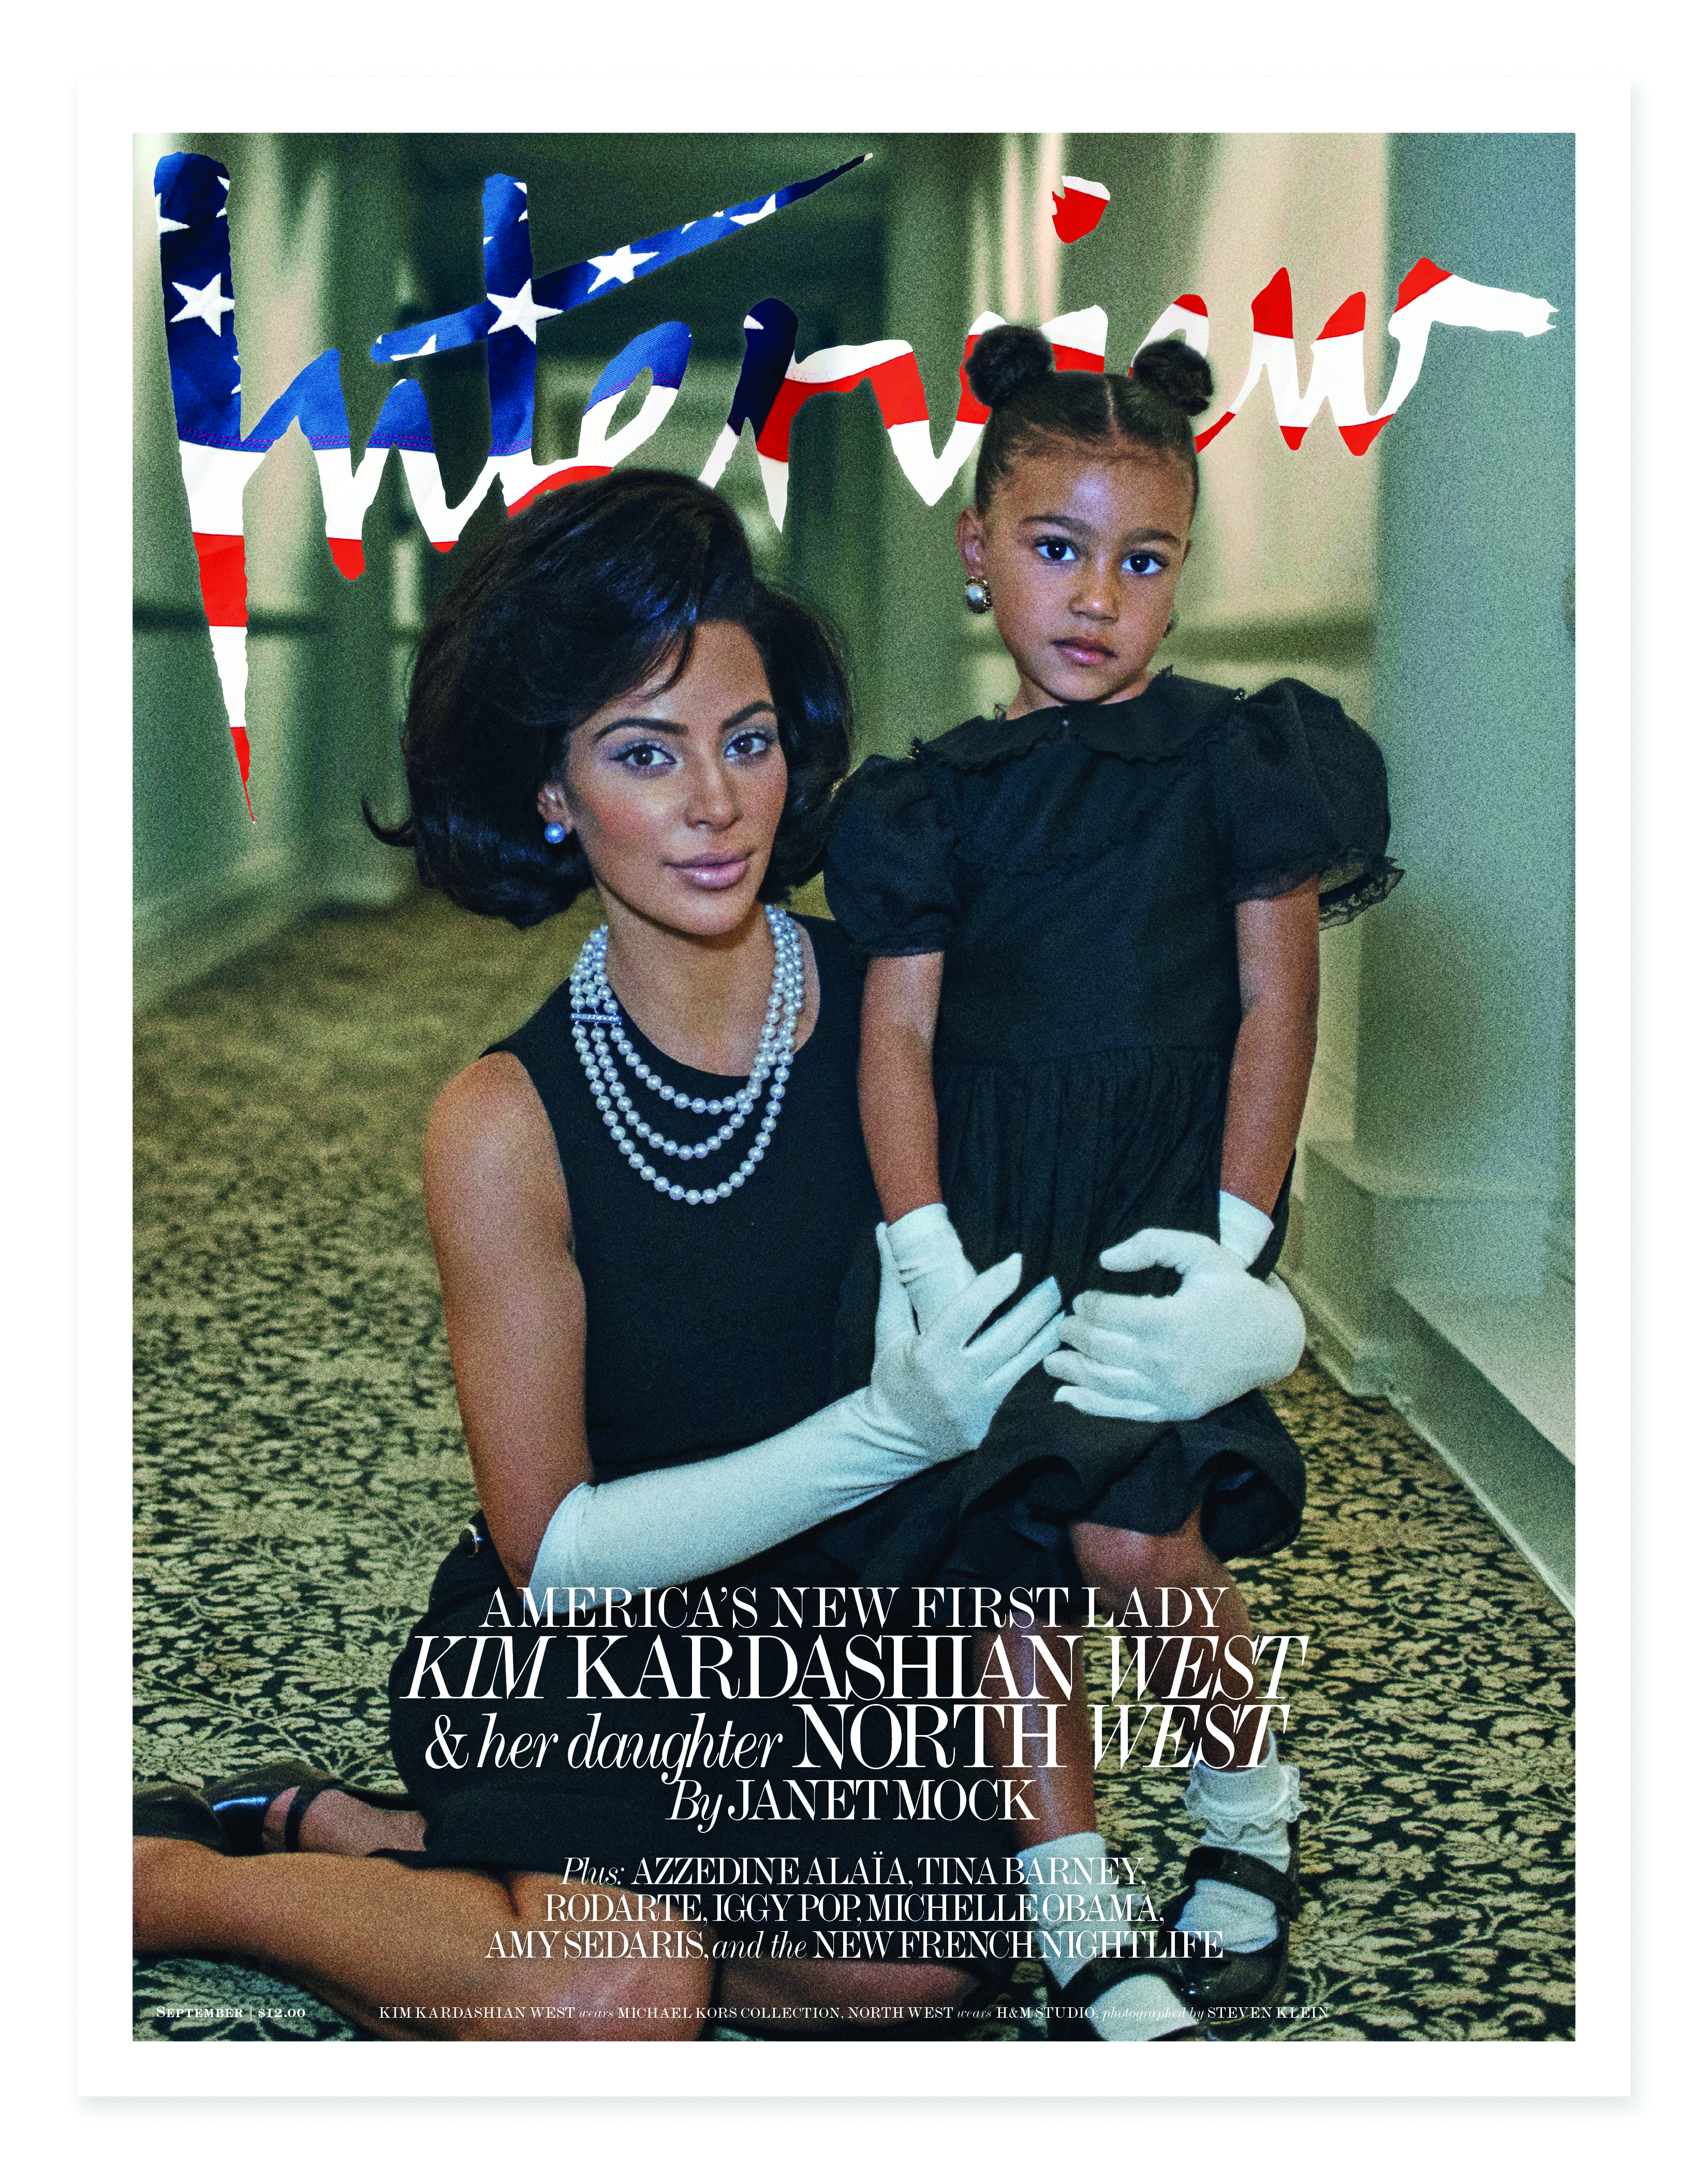 Kim Kardashian West & North West Cover Story for Interview Magazine